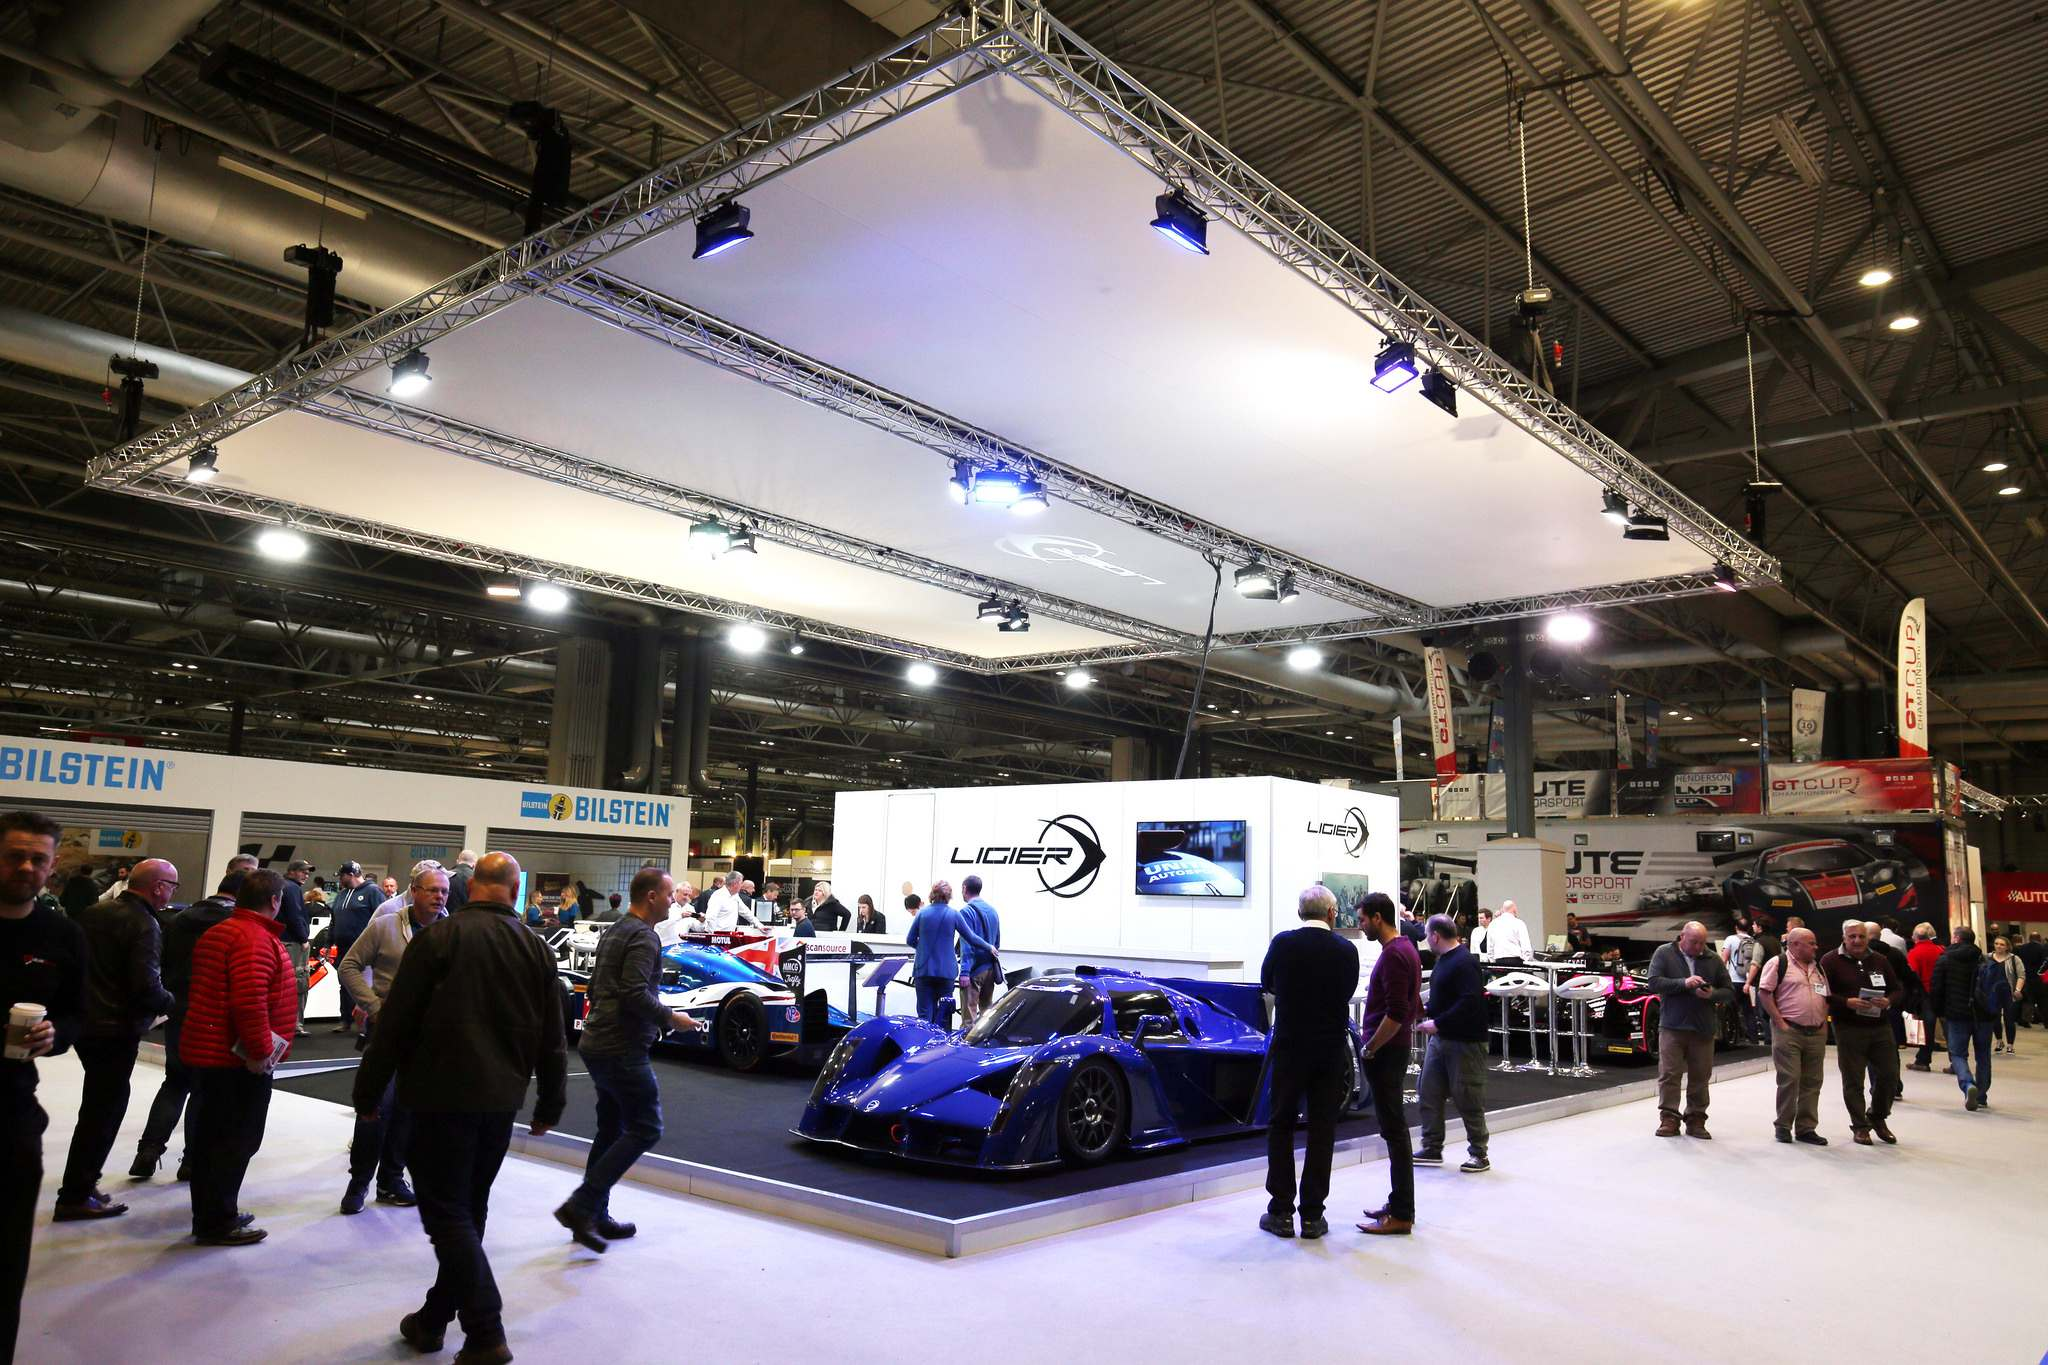 ligier 20186 Ligier at Autosport International Show 2018